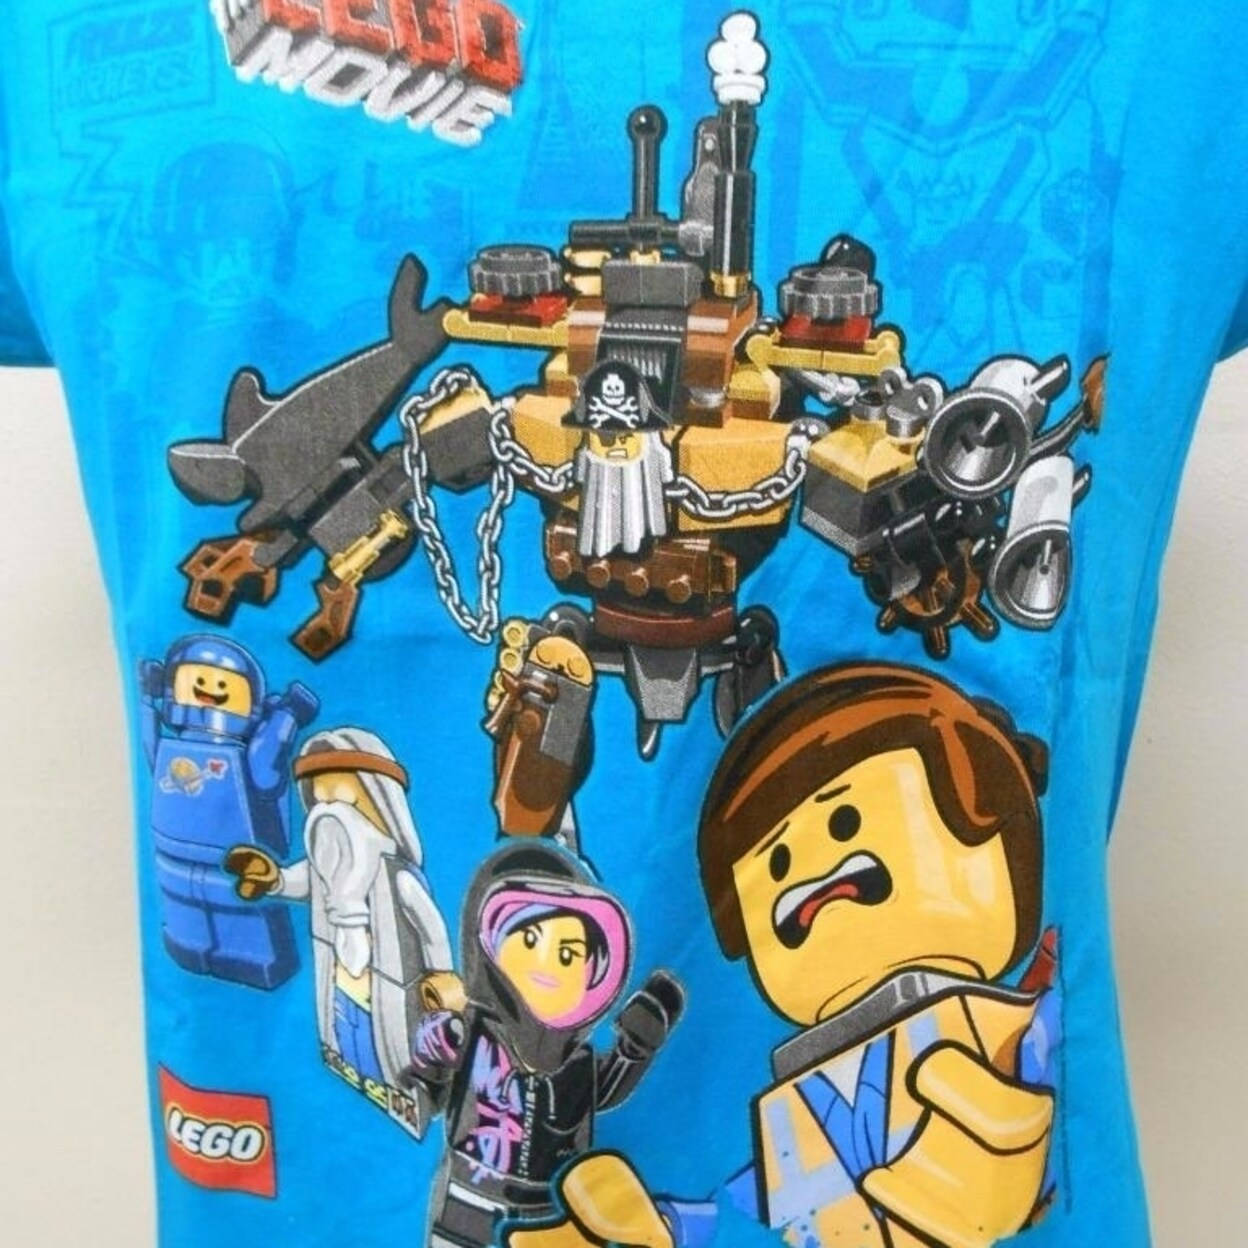 Shop Lego Movie Youth Sizes S L T Shirt Free Shipping On Orders Tee Over 45 23030318